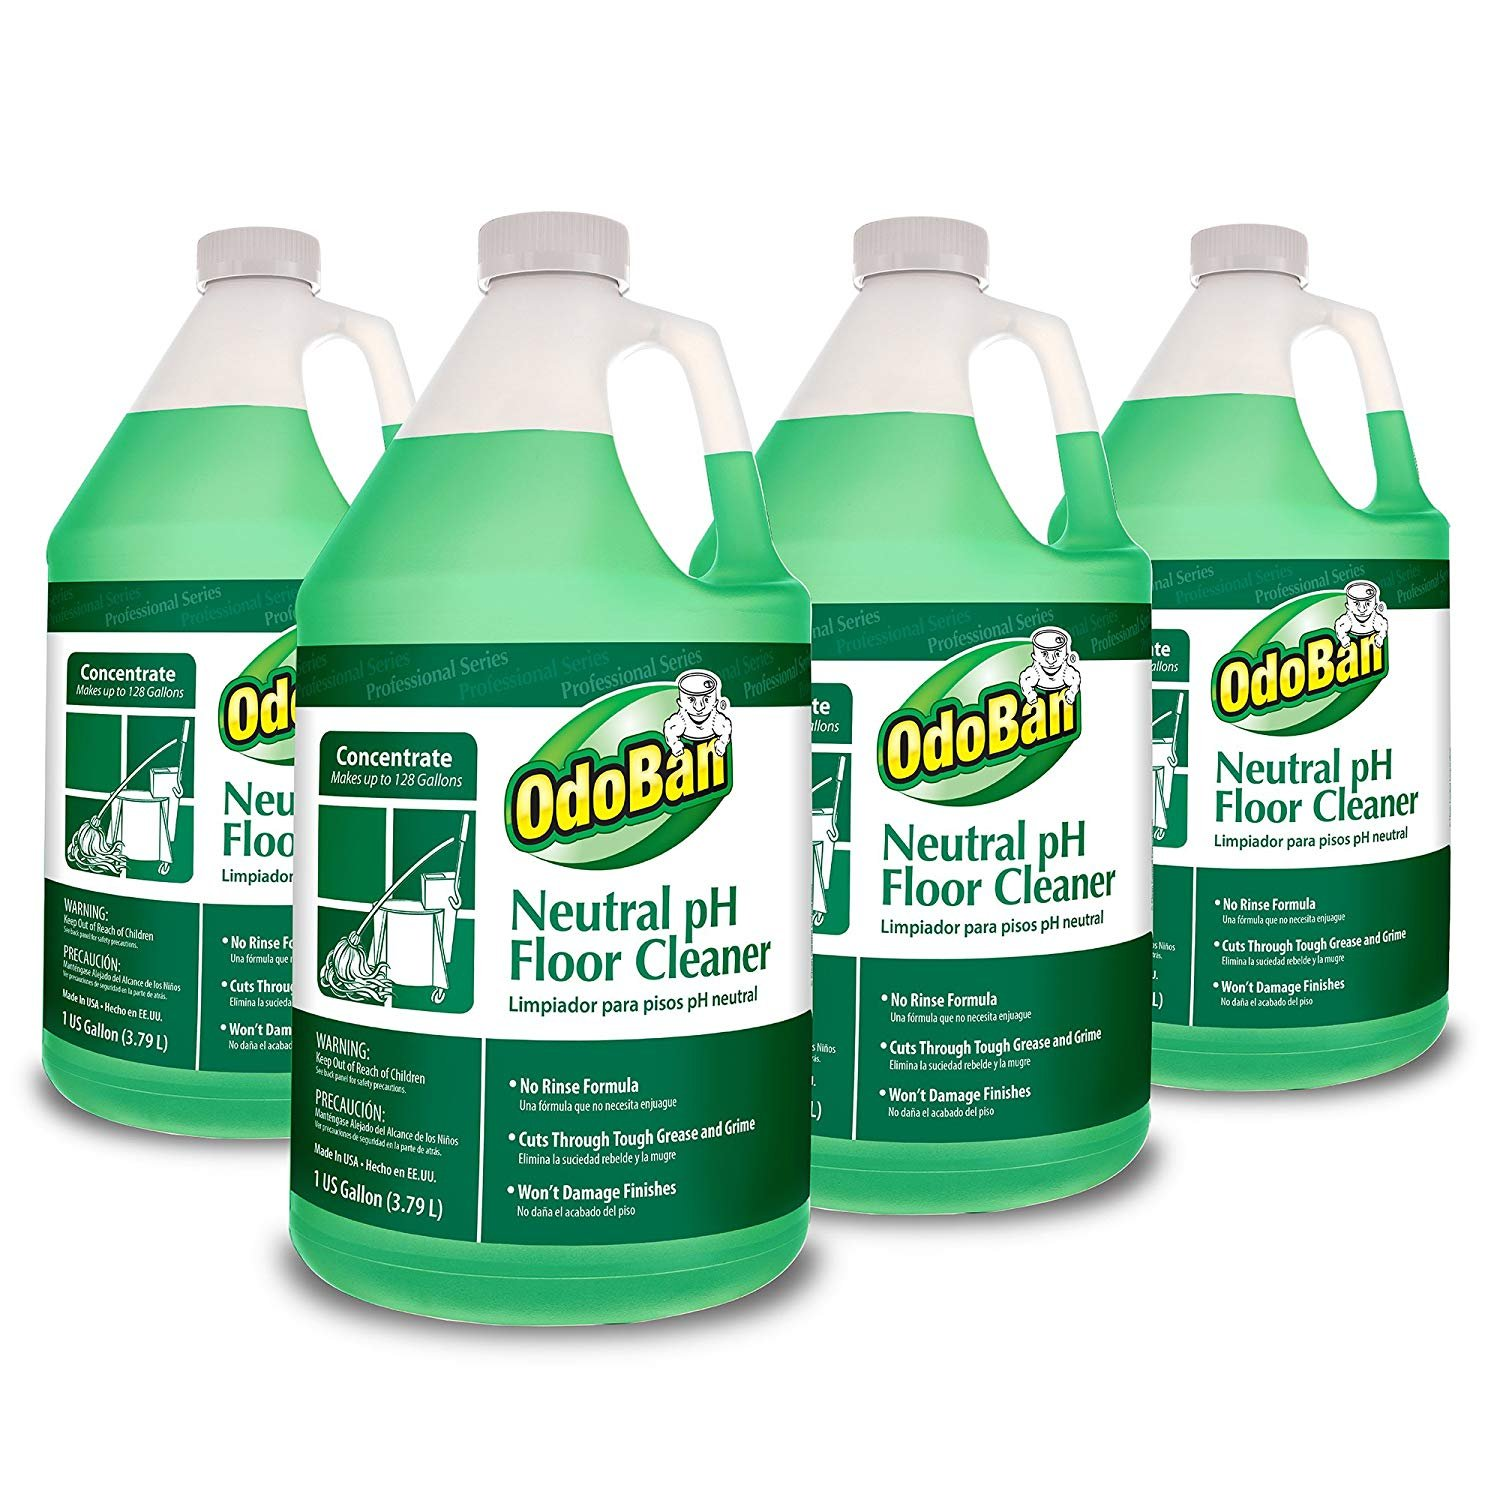 OdoBan Professional Series No Rinse Neutral pH Floor Cleaner Concentrate, 4 Gal